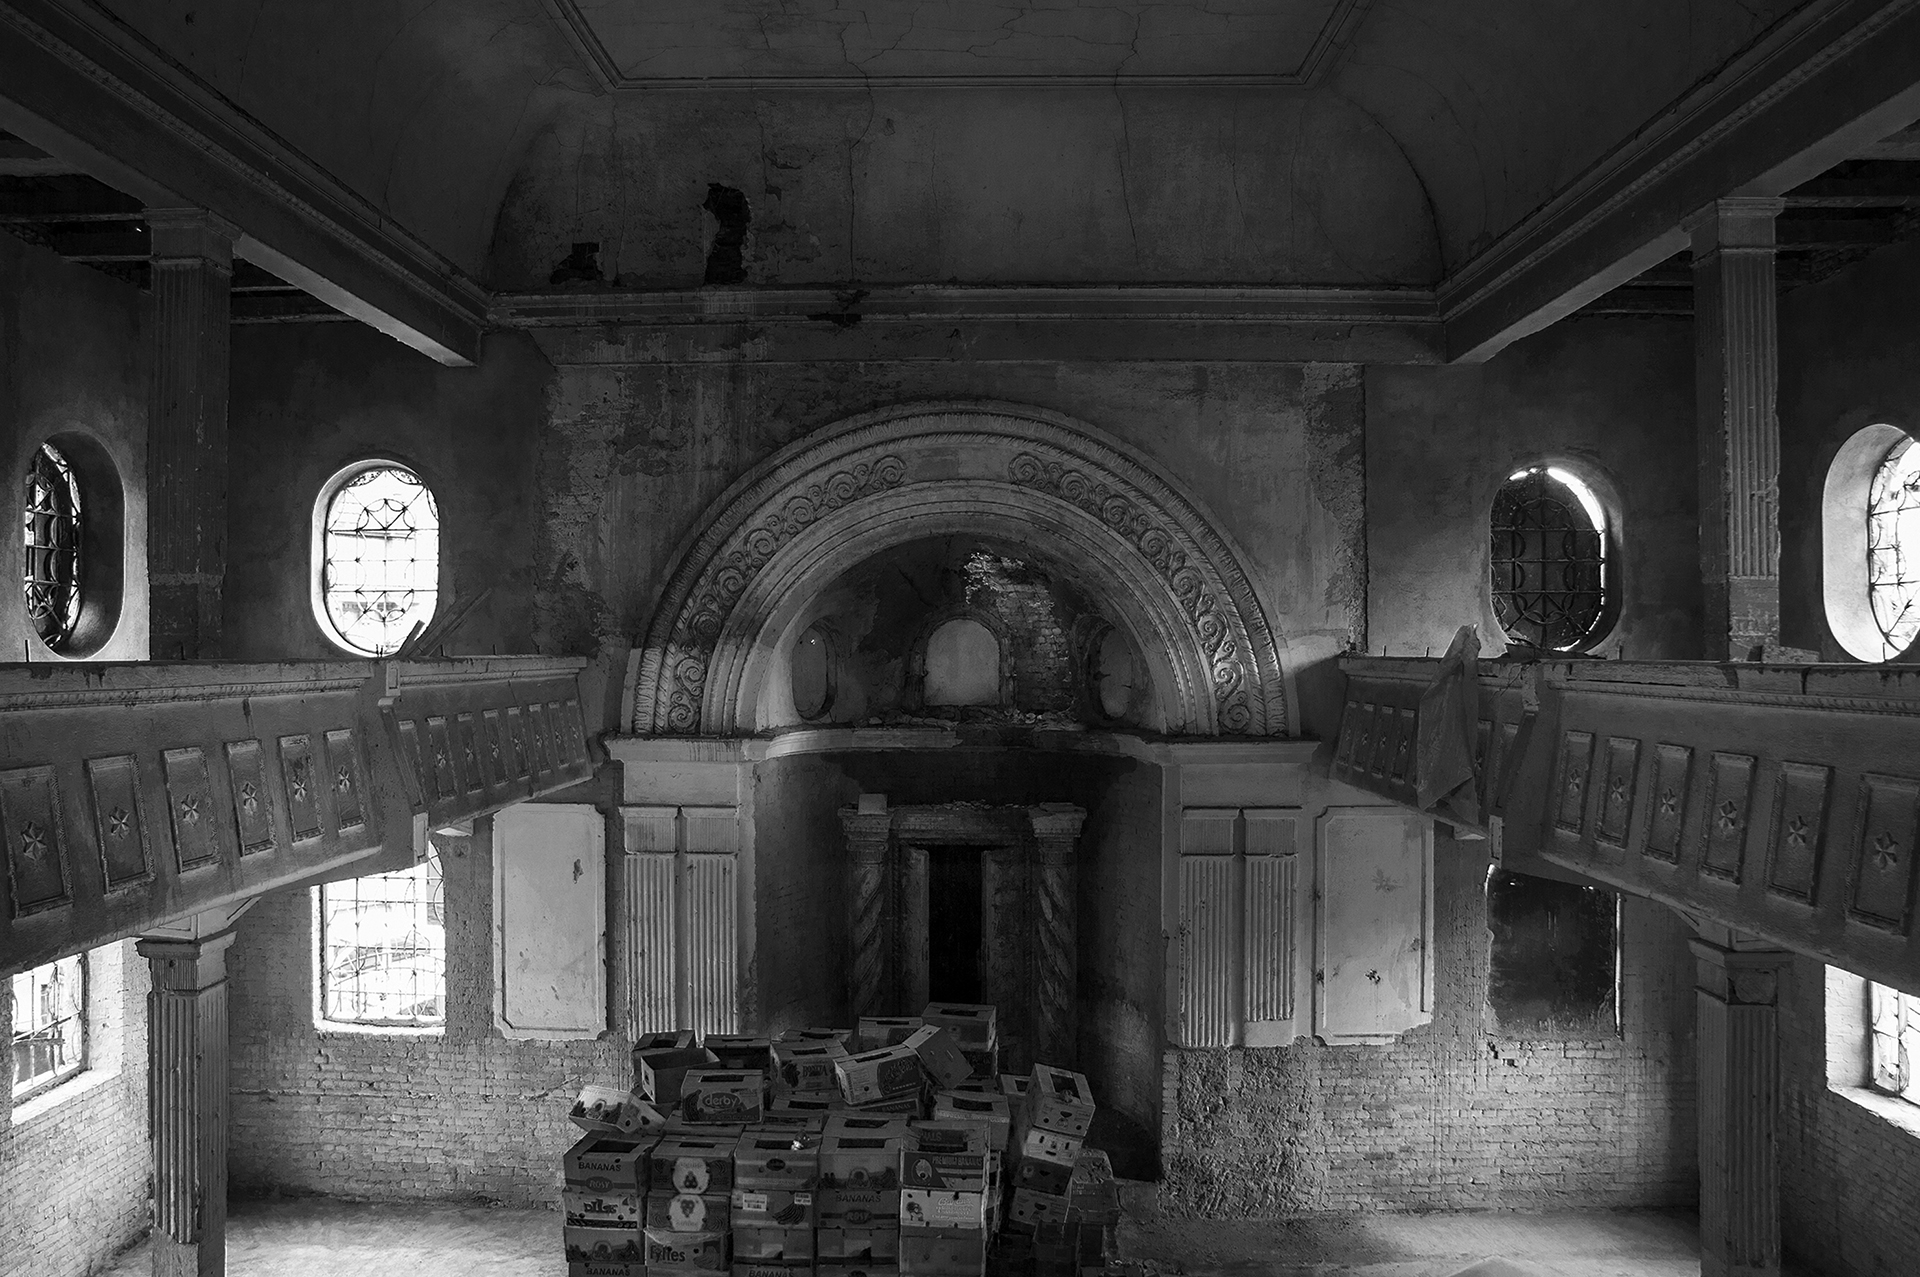 The Teleki Synagogue was the final synagogue built in Oradea in 1928 and was used as a warehouse for the street markets just outside its doors on April 10, 2013. © DANIEL OWEN UPDATE: The once storage room and crumbling synagogue is currently being transformed into a local Jewish history museum. (Photo by Daniel Owen/GroundTruth)